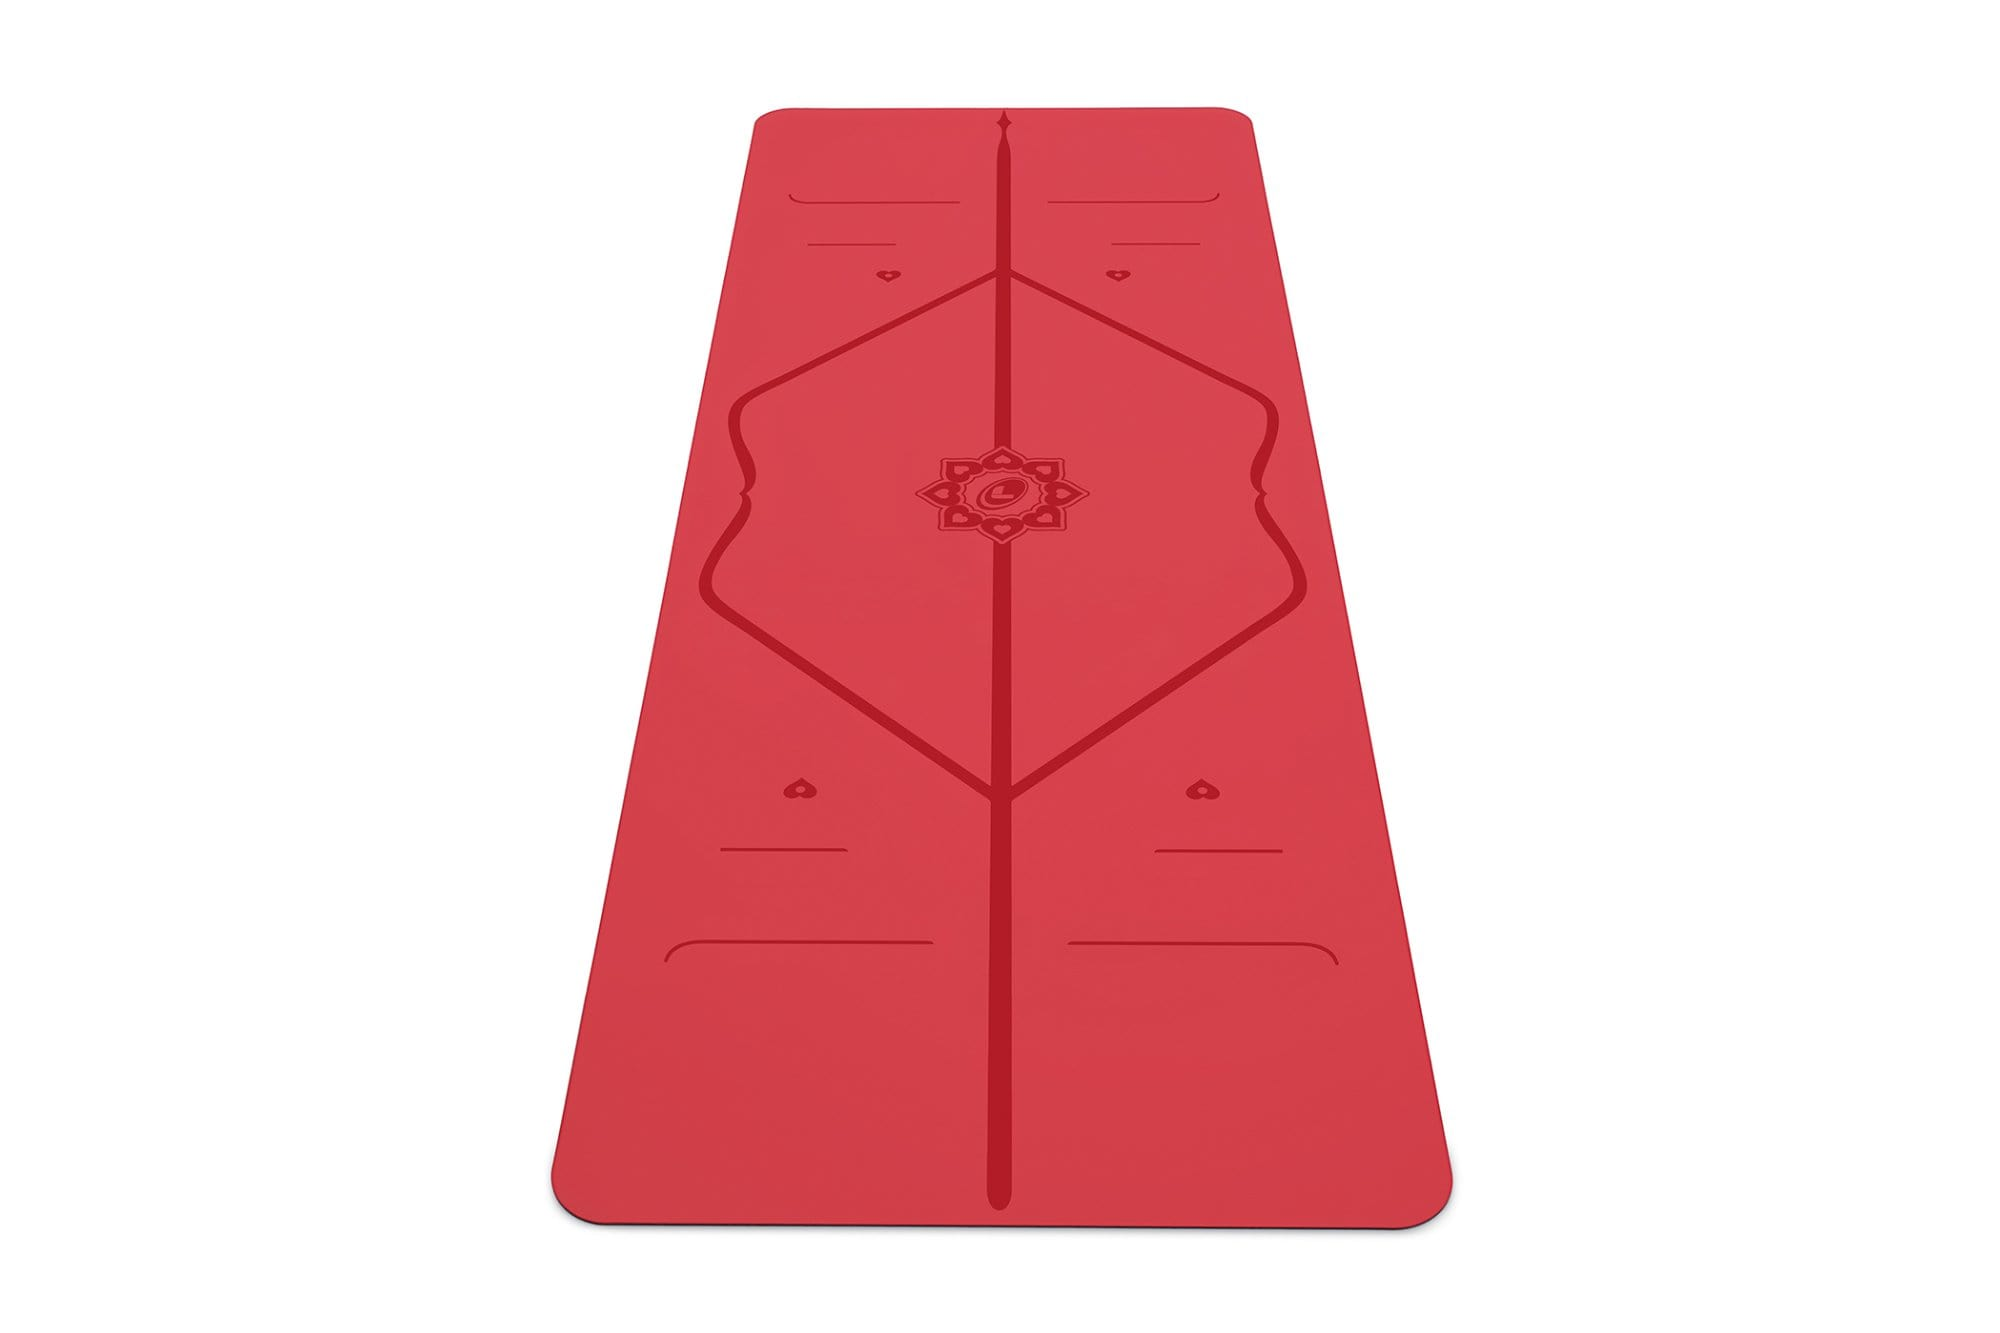 Portrait view of love Yoga mat from Liforme